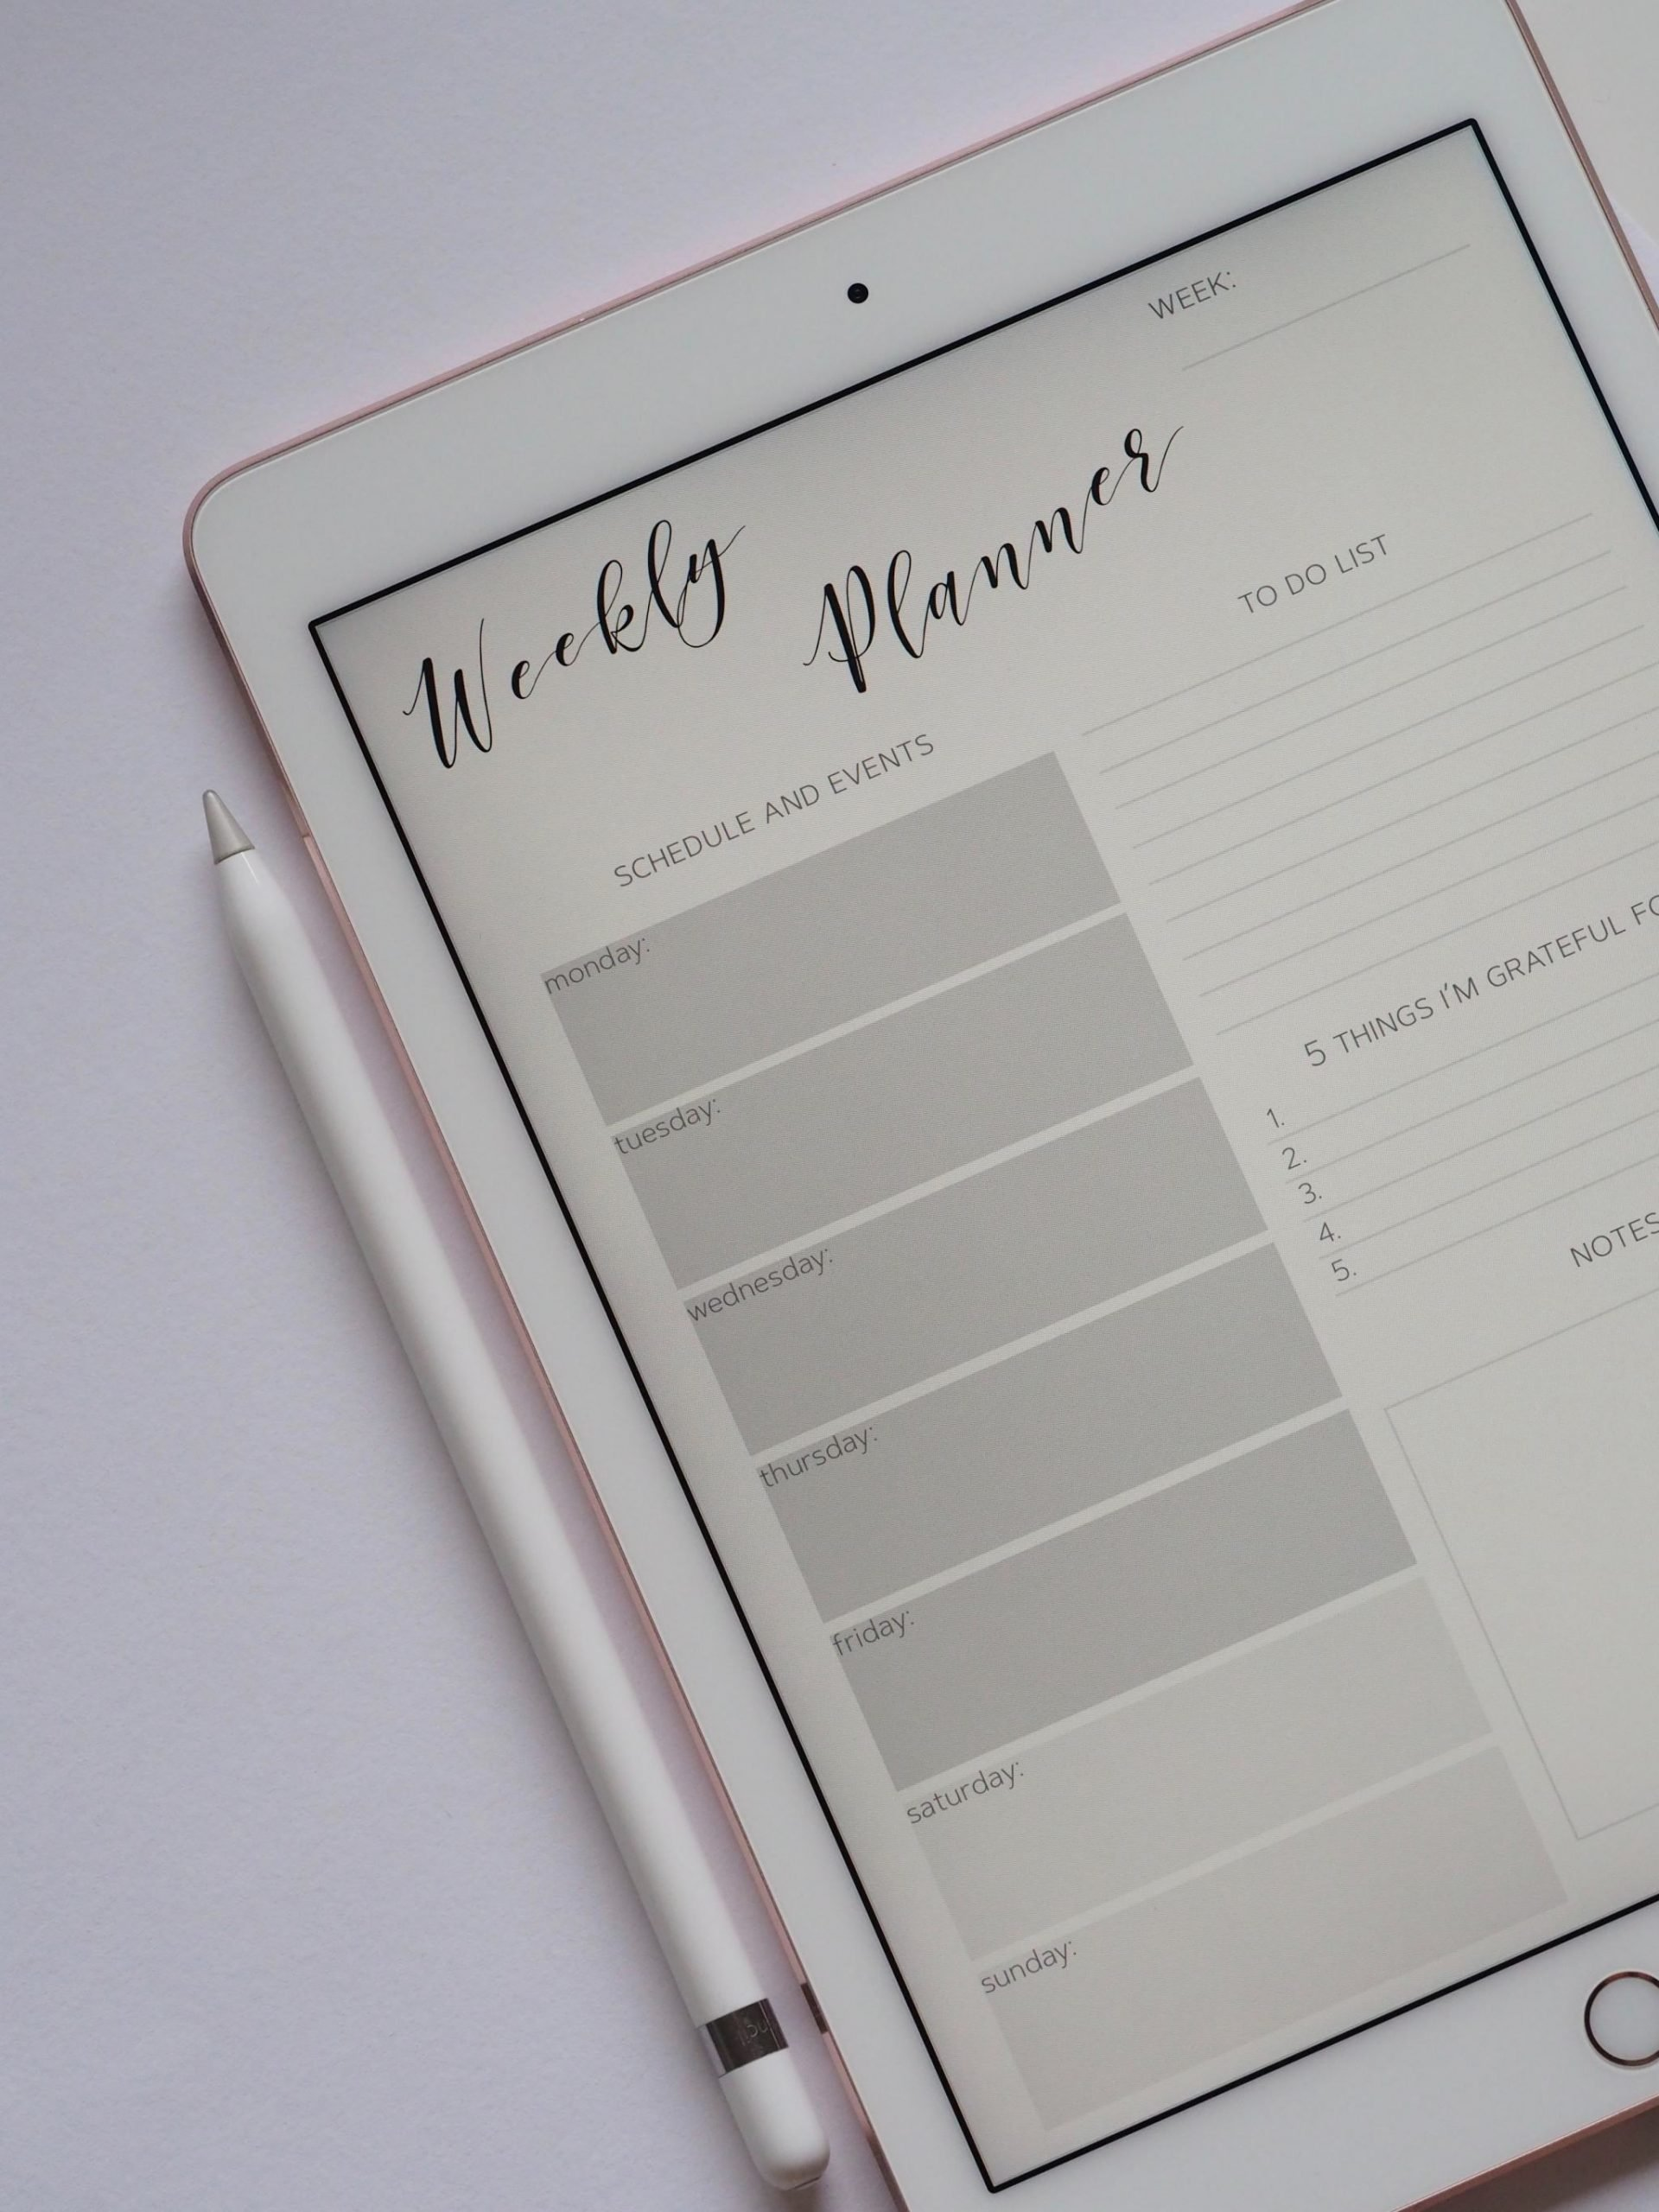 An ipad showing a Weekly Planner As Productive Habits To Adopt On Sundays